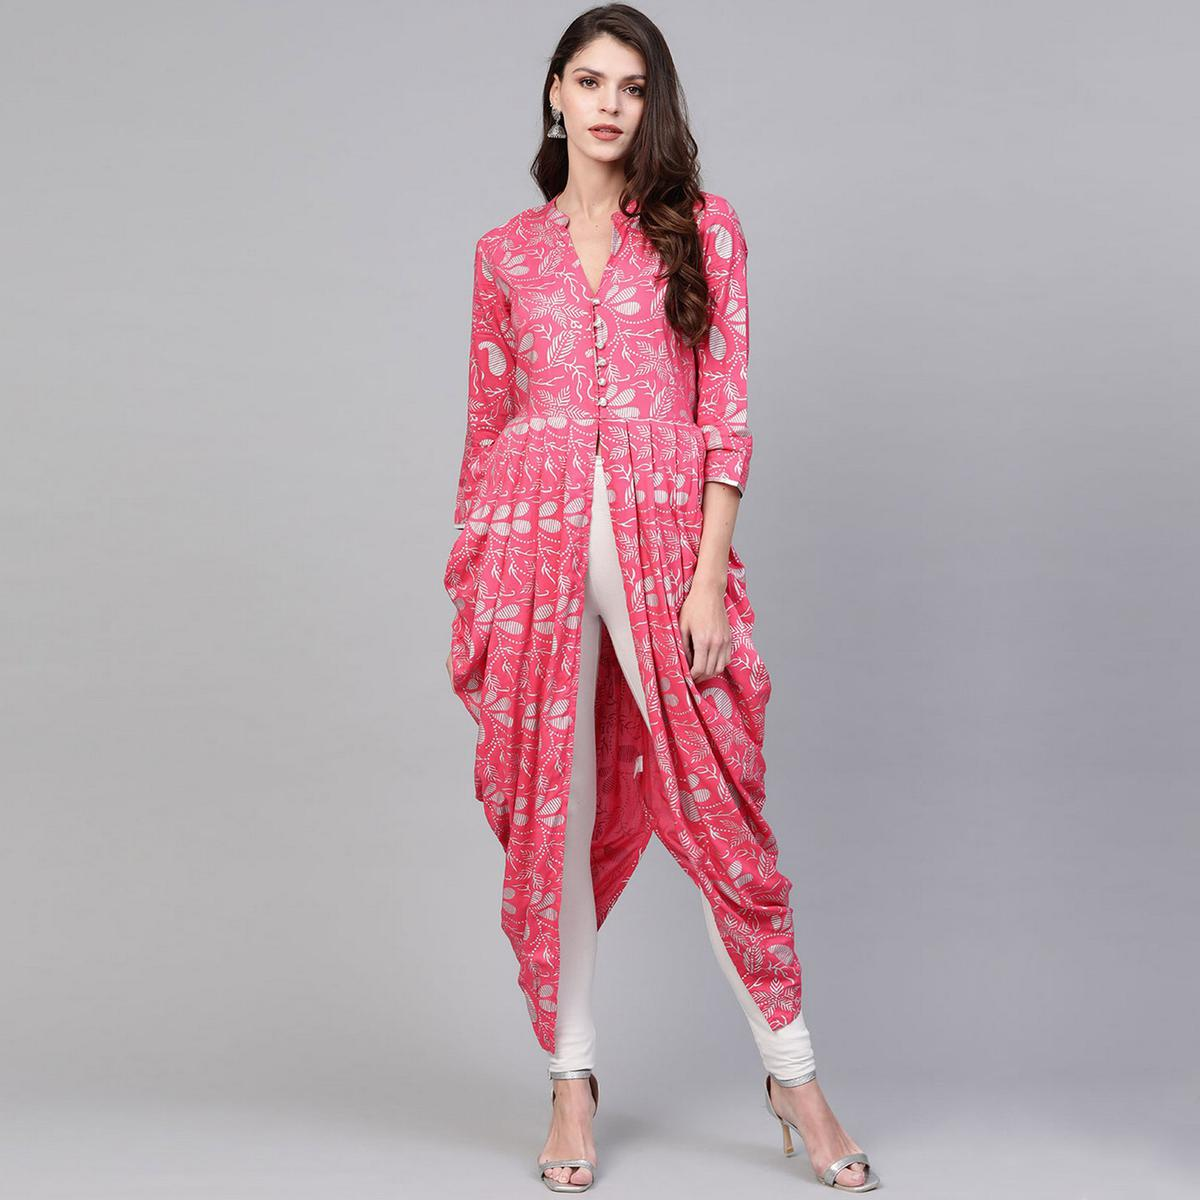 Exceptional Pink Colored Party Wear Printed Rayon Kurti